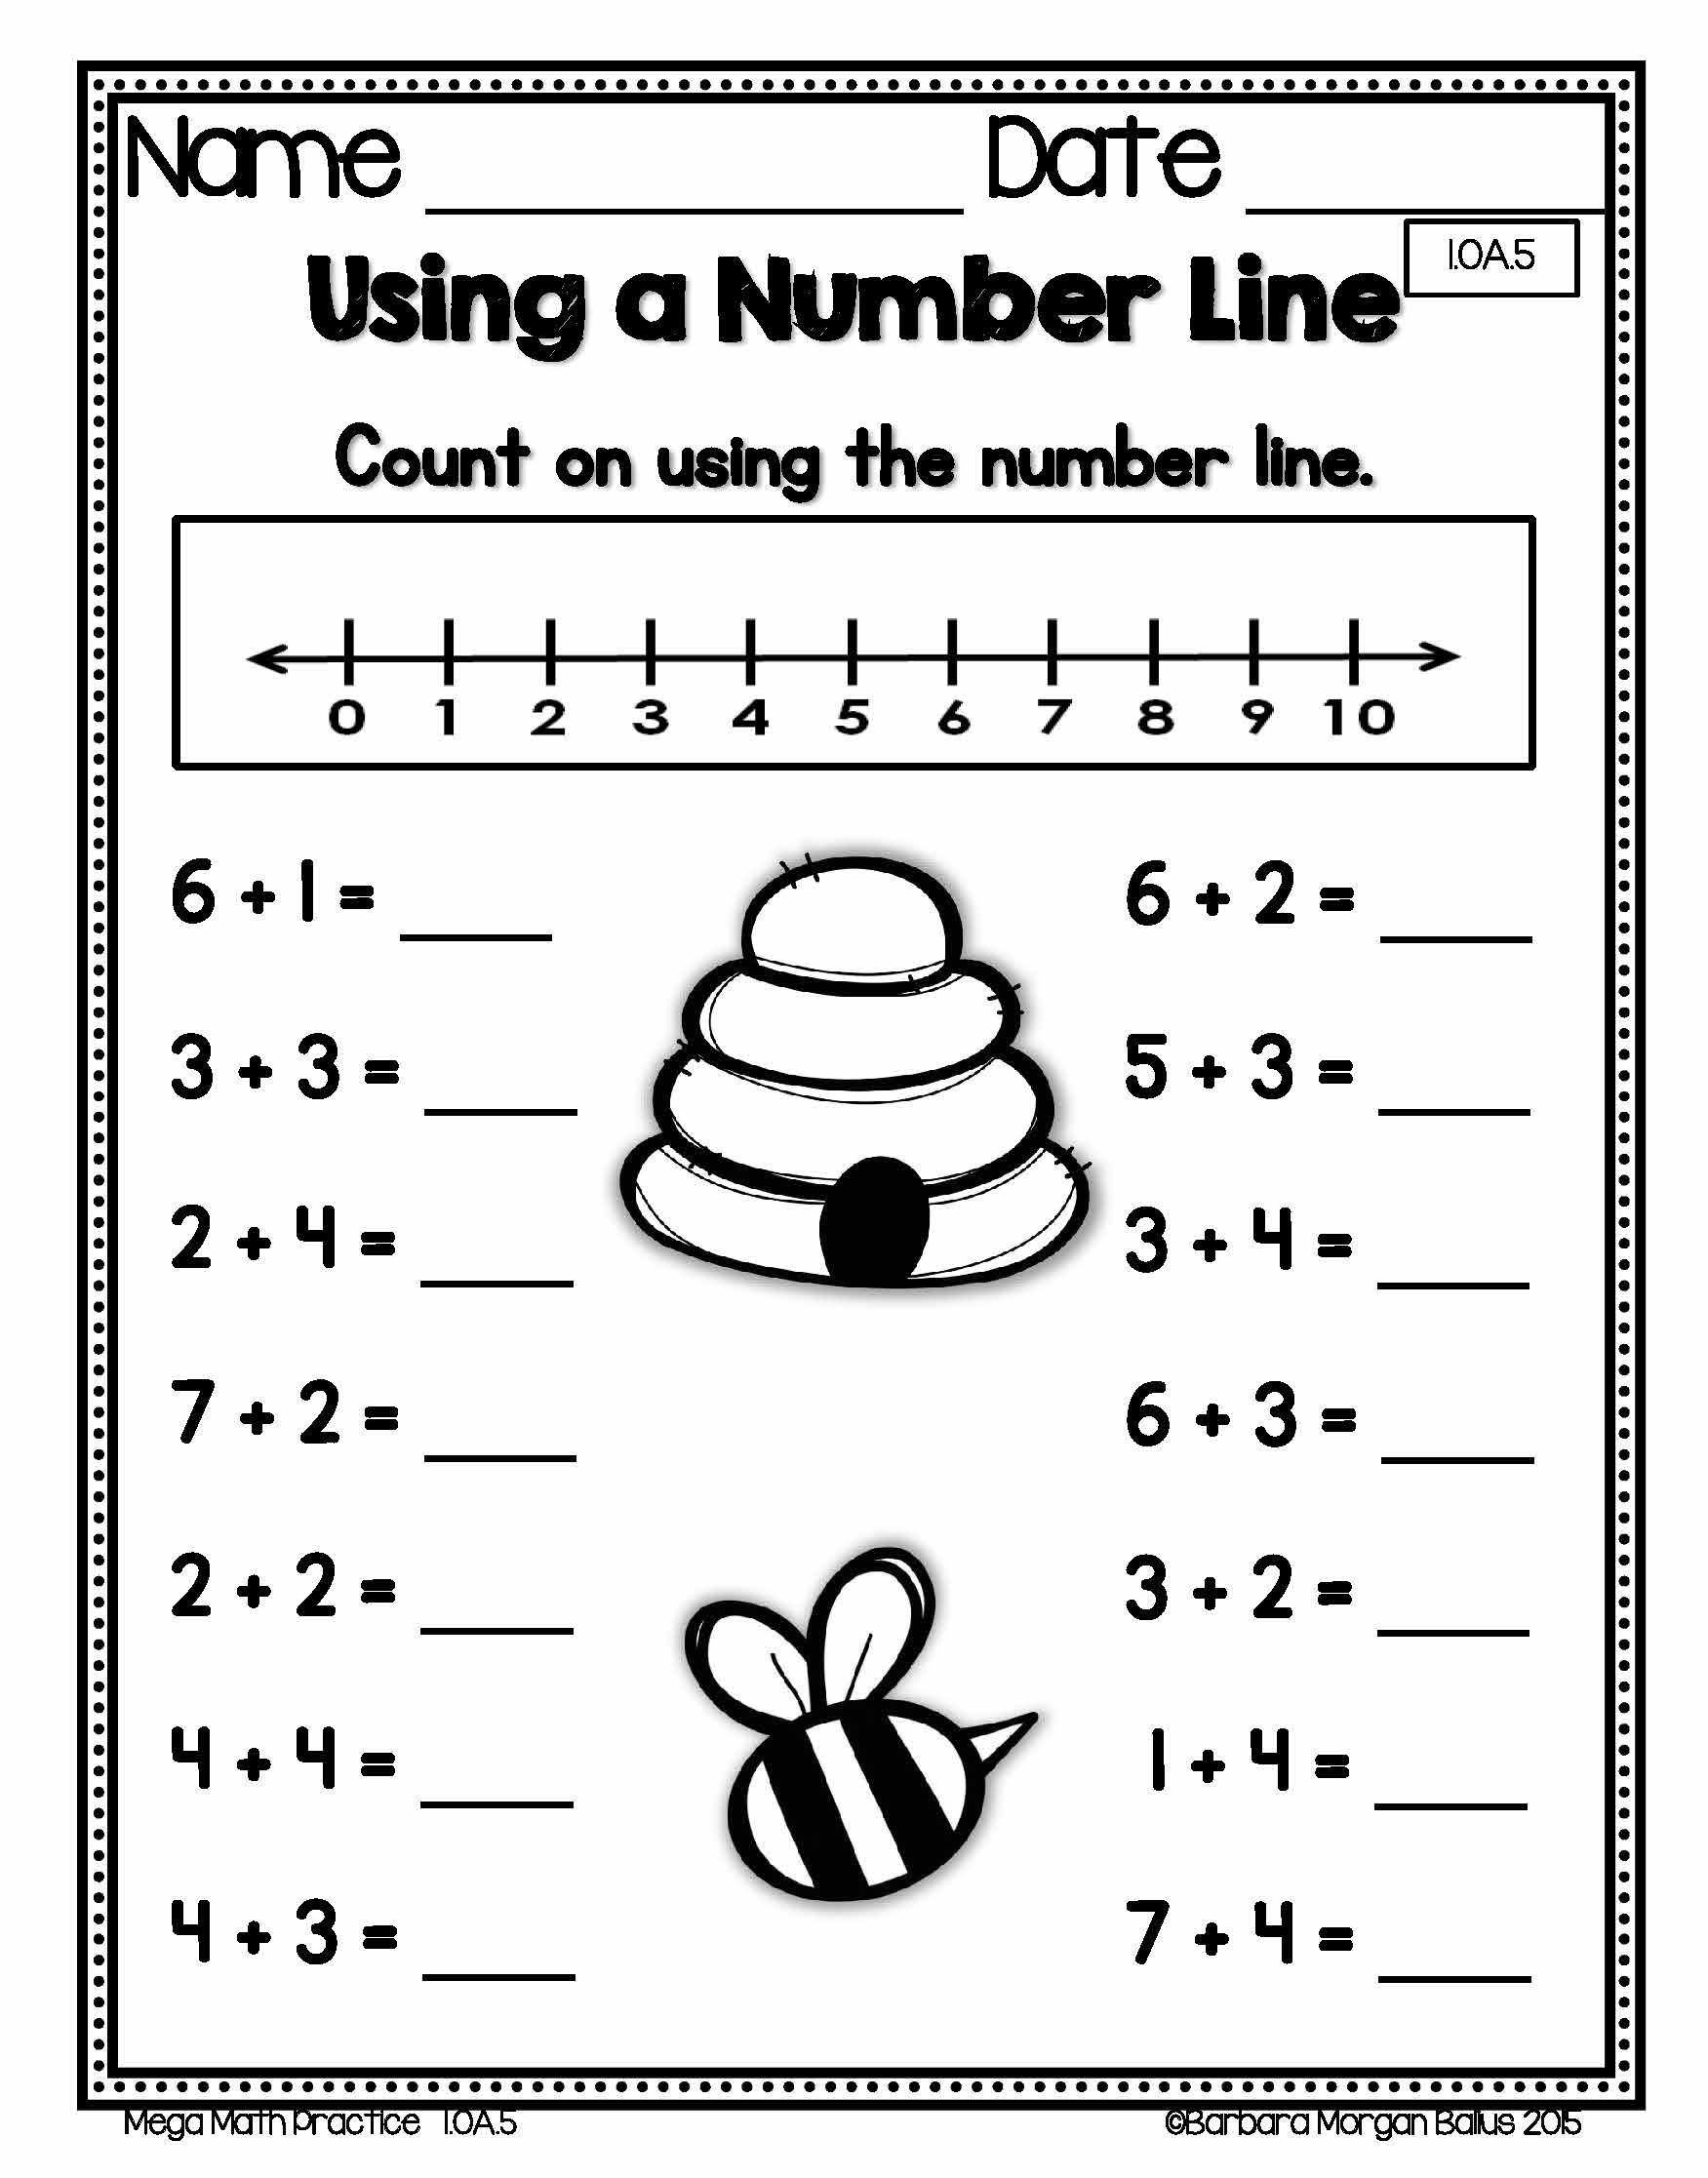 Worksheets 1st Grade Common Core Math Worksheets first grade number sense unit common core math properties of operations mega practice 1 oa 5